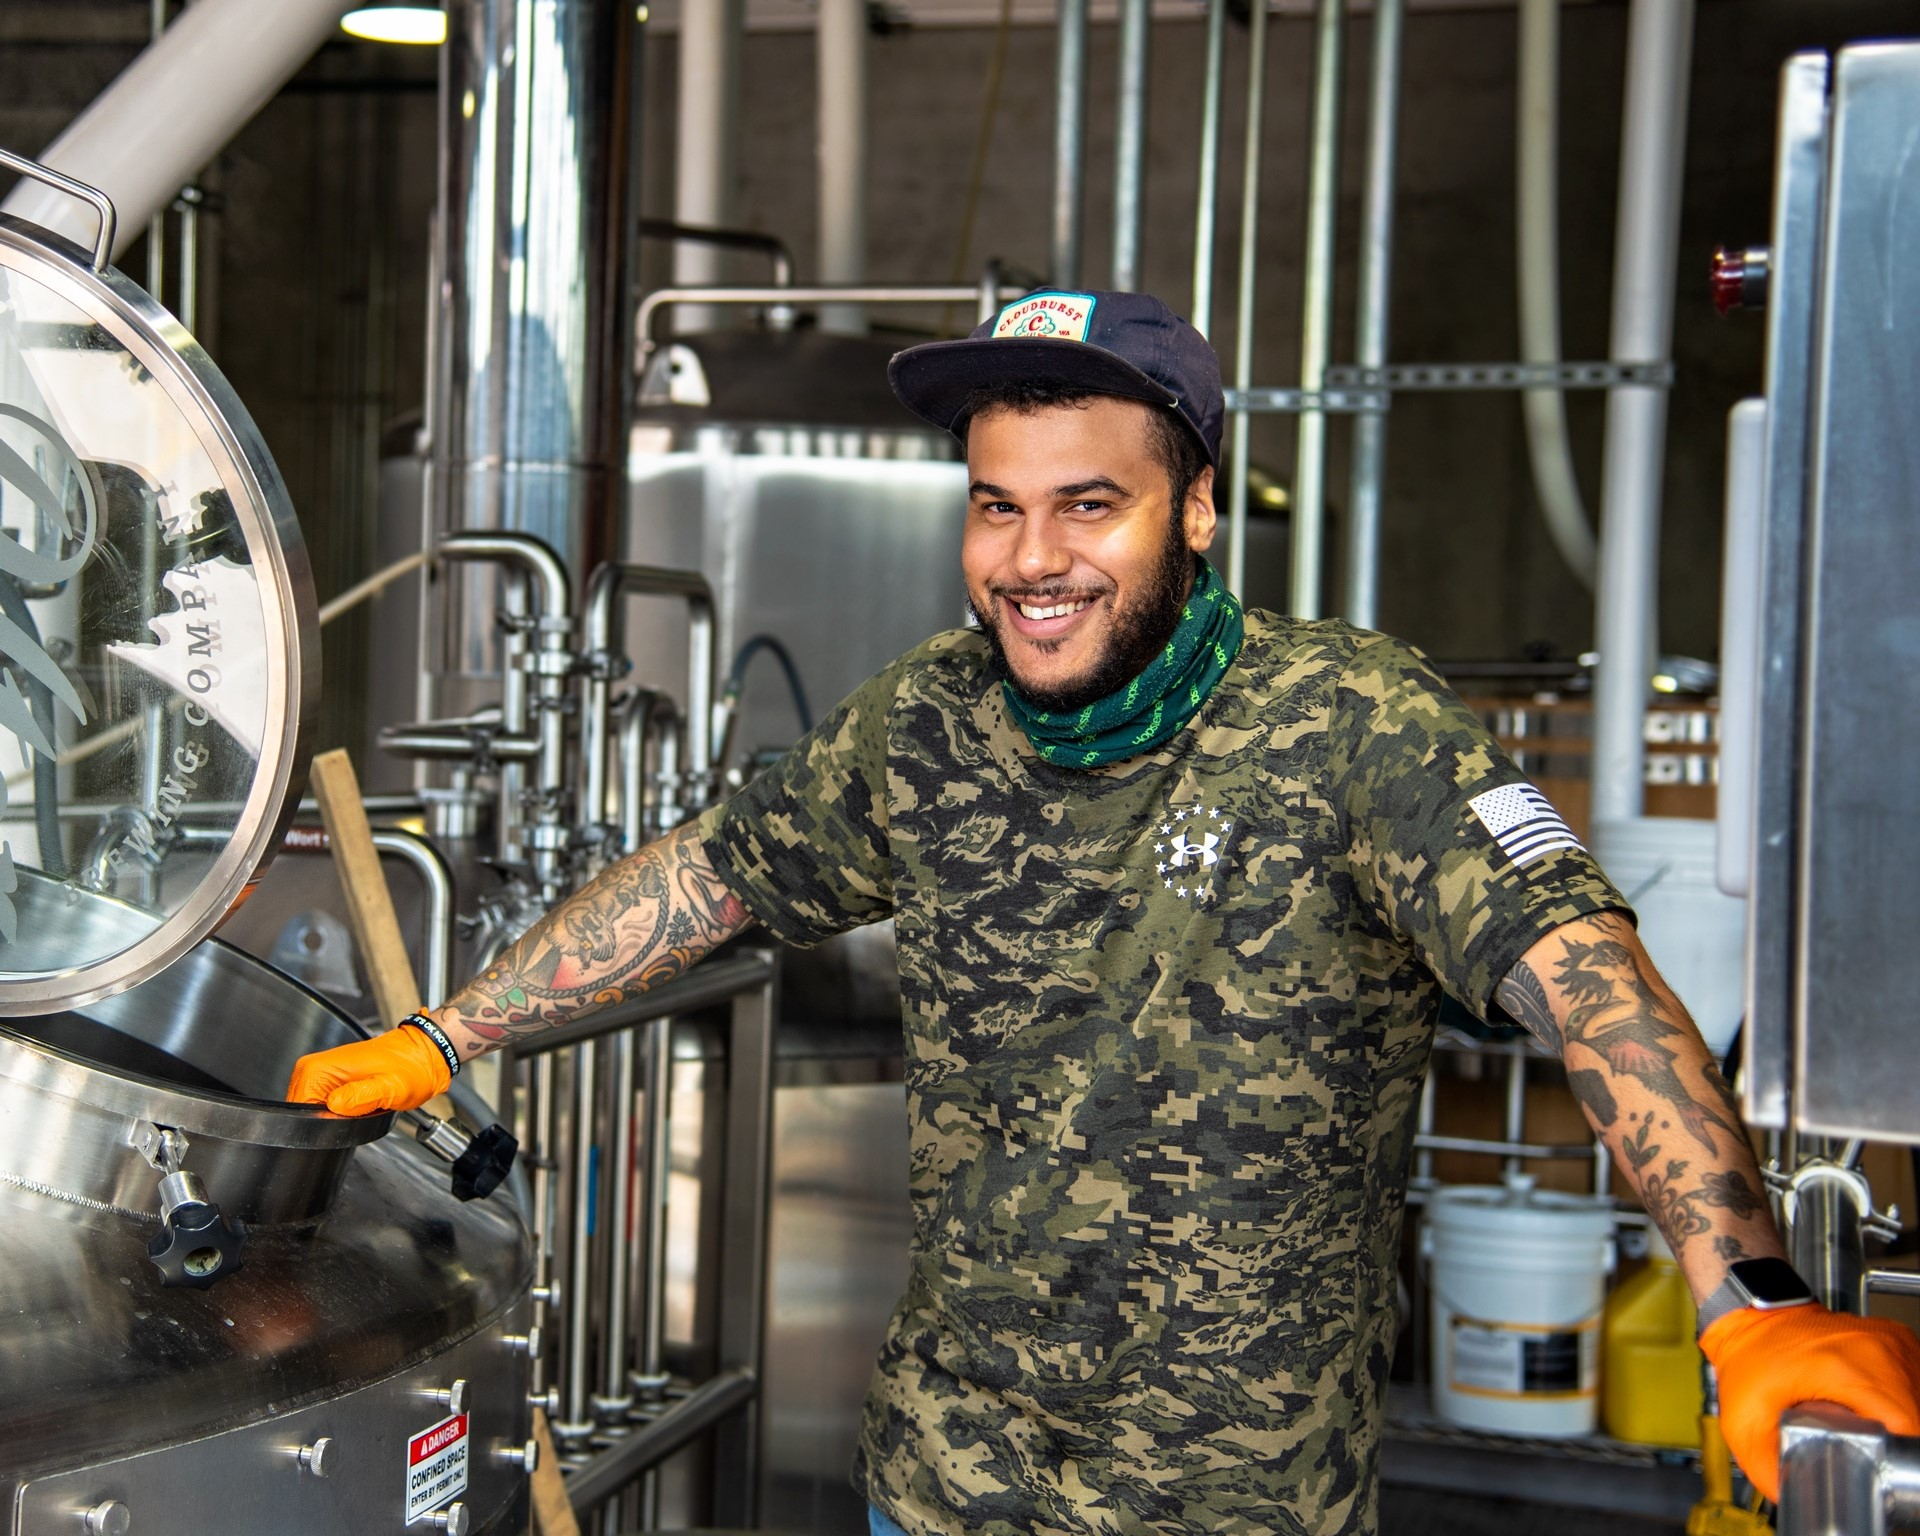 Brewer prepping Alter Brewing Company's Festbier